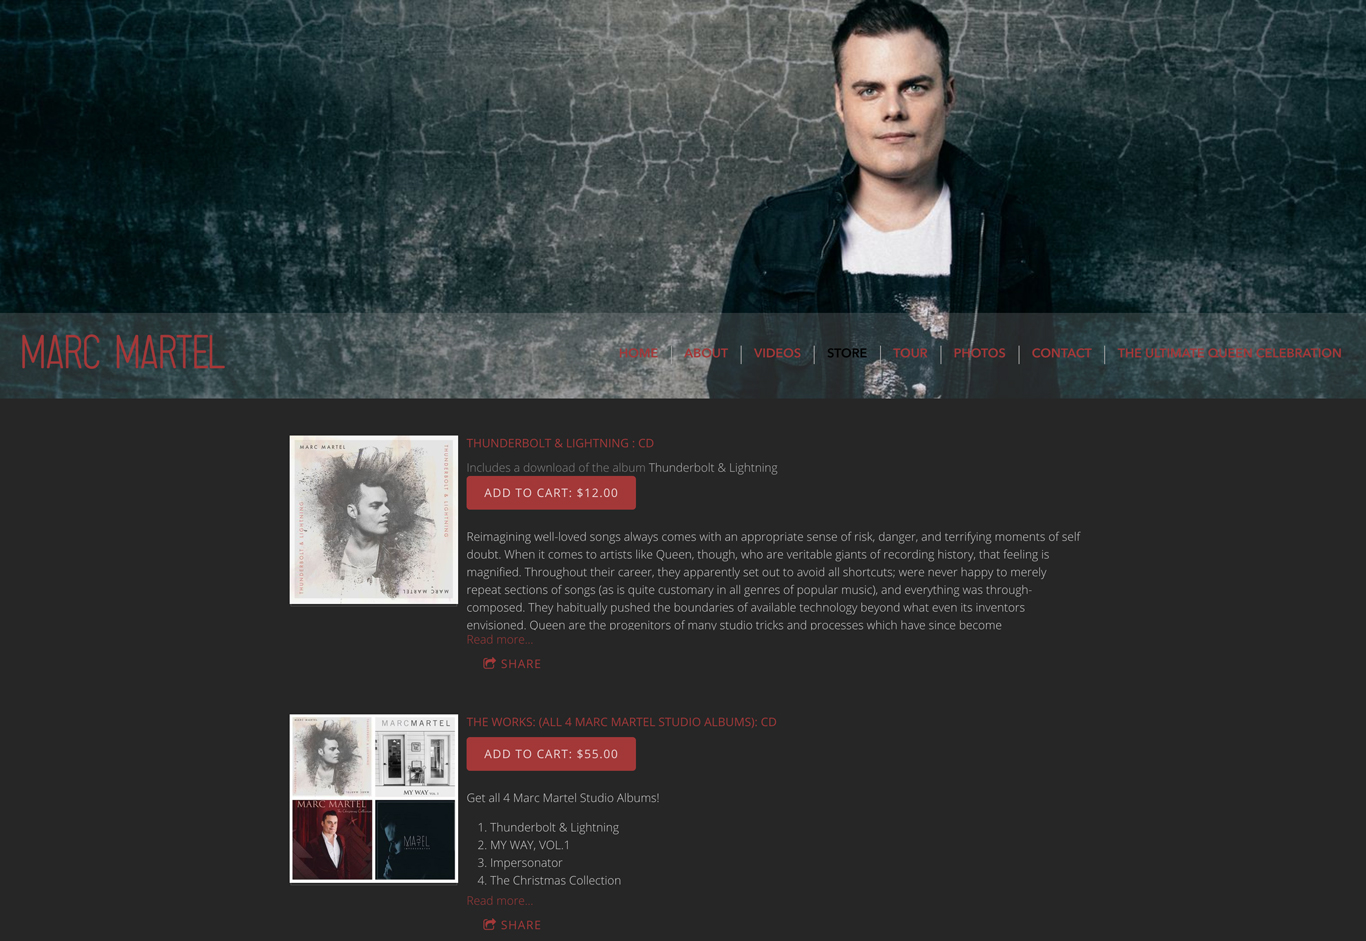 Music website example direct to fan sales